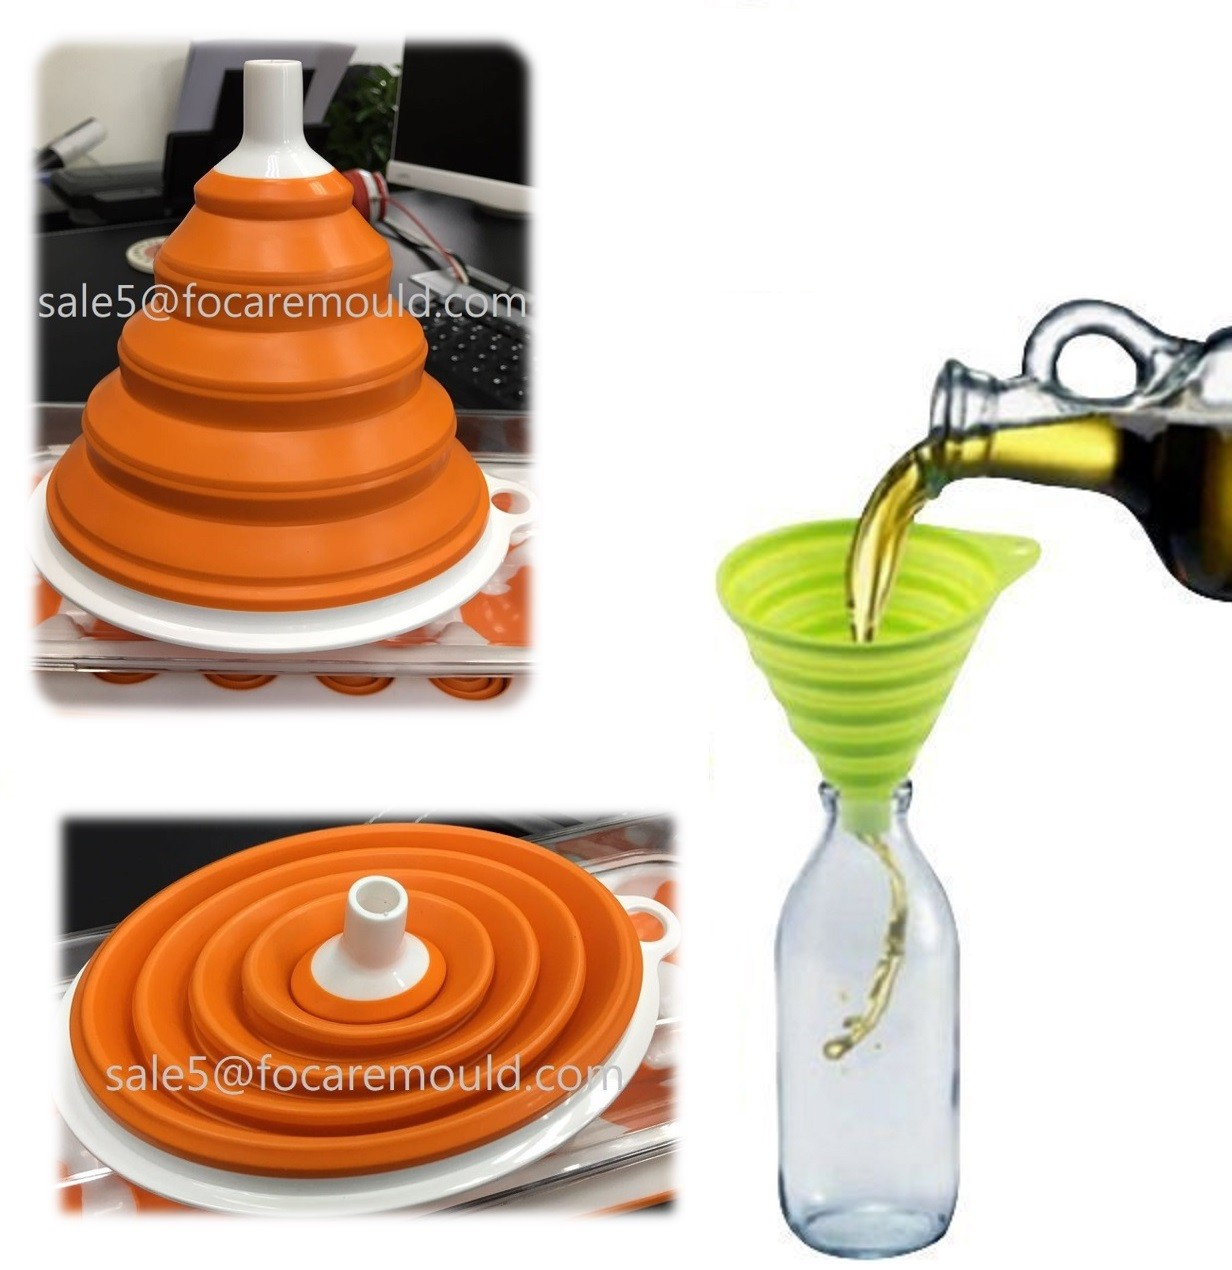 High quality Kitchen Collapsible/Flexible Funnels Two-Color Injection Mold Quotes,China Kitchen Collapsible/Flexible Funnels Two-Color Injection Mold Factory,Kitchen Collapsible/Flexible Funnels Two-Color Injection Mold Purchasing